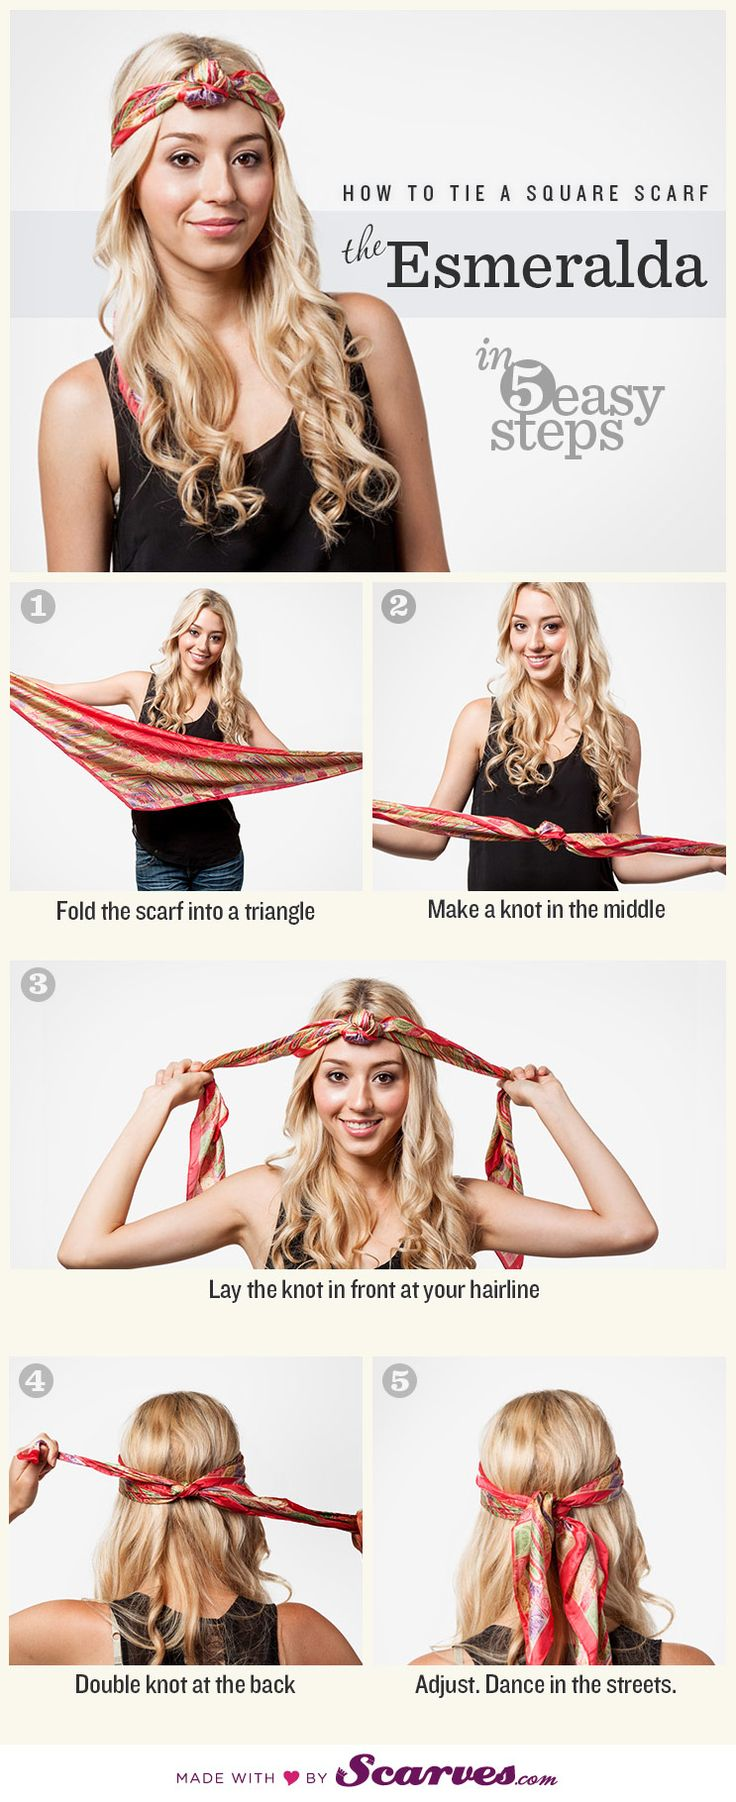 How to Tie a Square Scarf: the Esmeralda